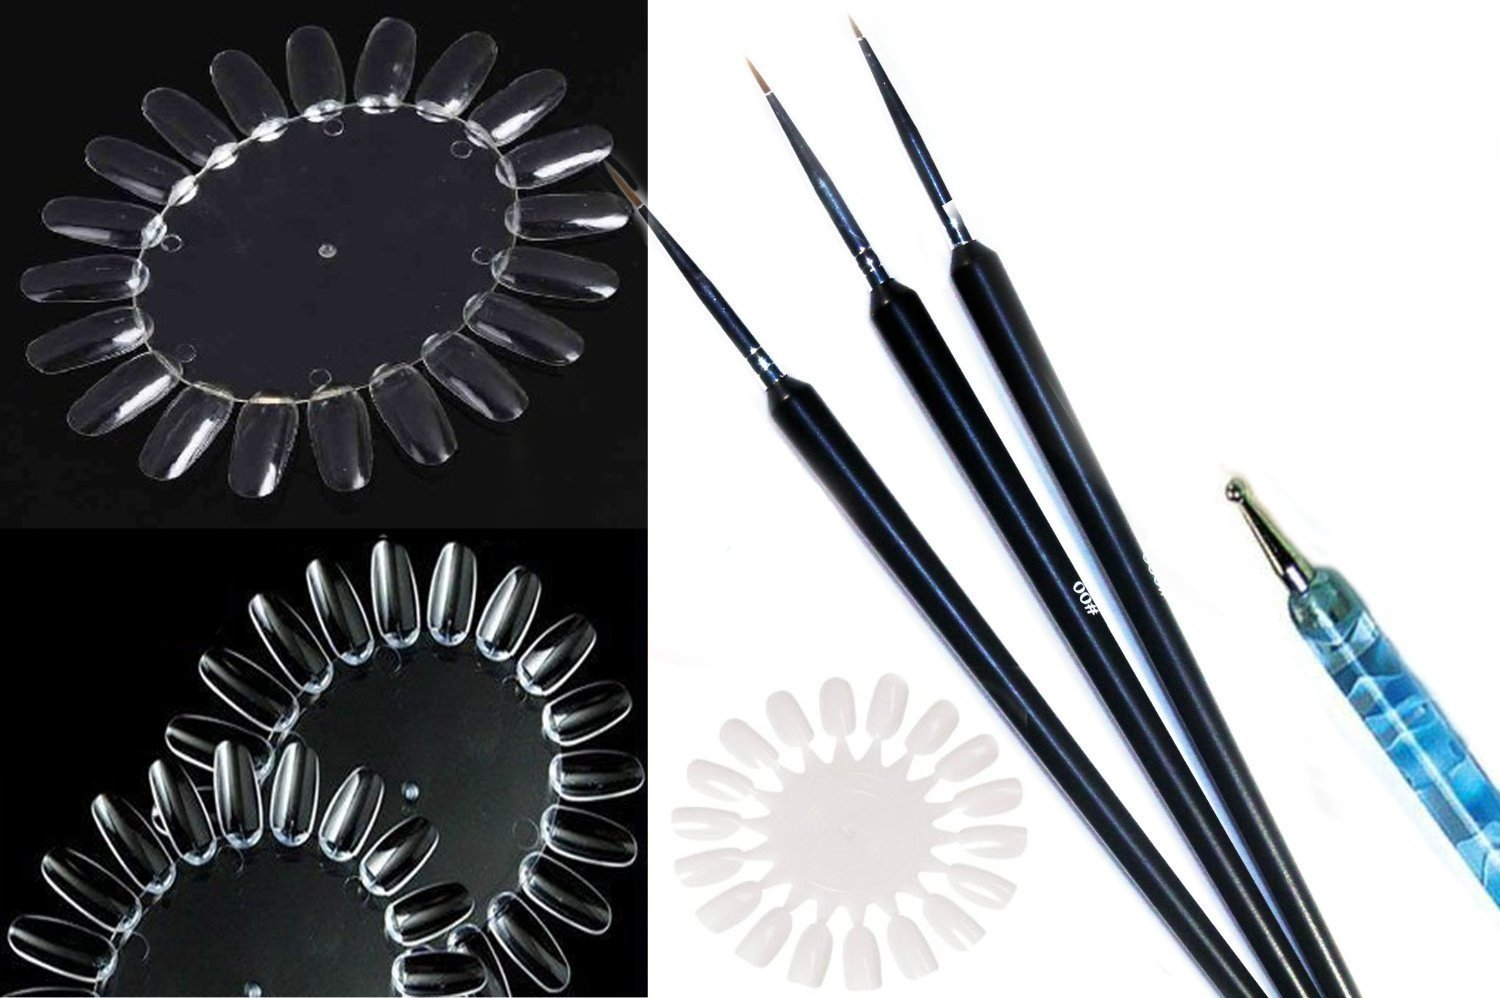 JOVANA 3pcs Precision Sable Nail Art Detailing Liner Brushes Plus 3 x Clear Practice Nail Design Display Wheels & Dotting Tool